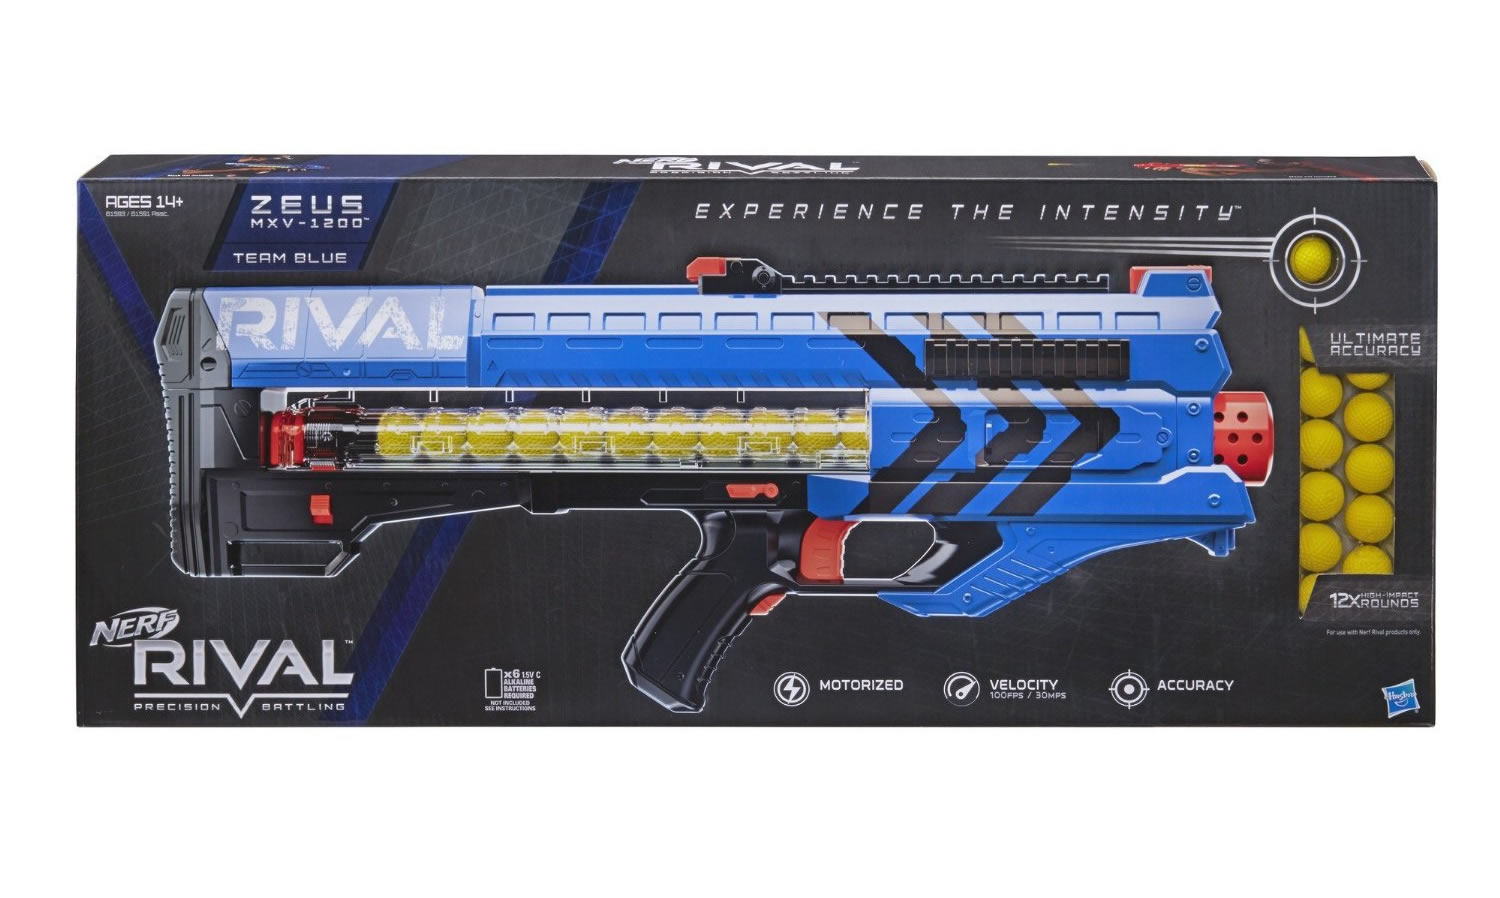 Shop for NERF & Blaster Toys in Outdoor Play. Buy products such as Nerf N-strike Elite Infinus with Speed-Load Technology, Dart Drum, and 30 Nerf Elite Darts at Walmart and save.